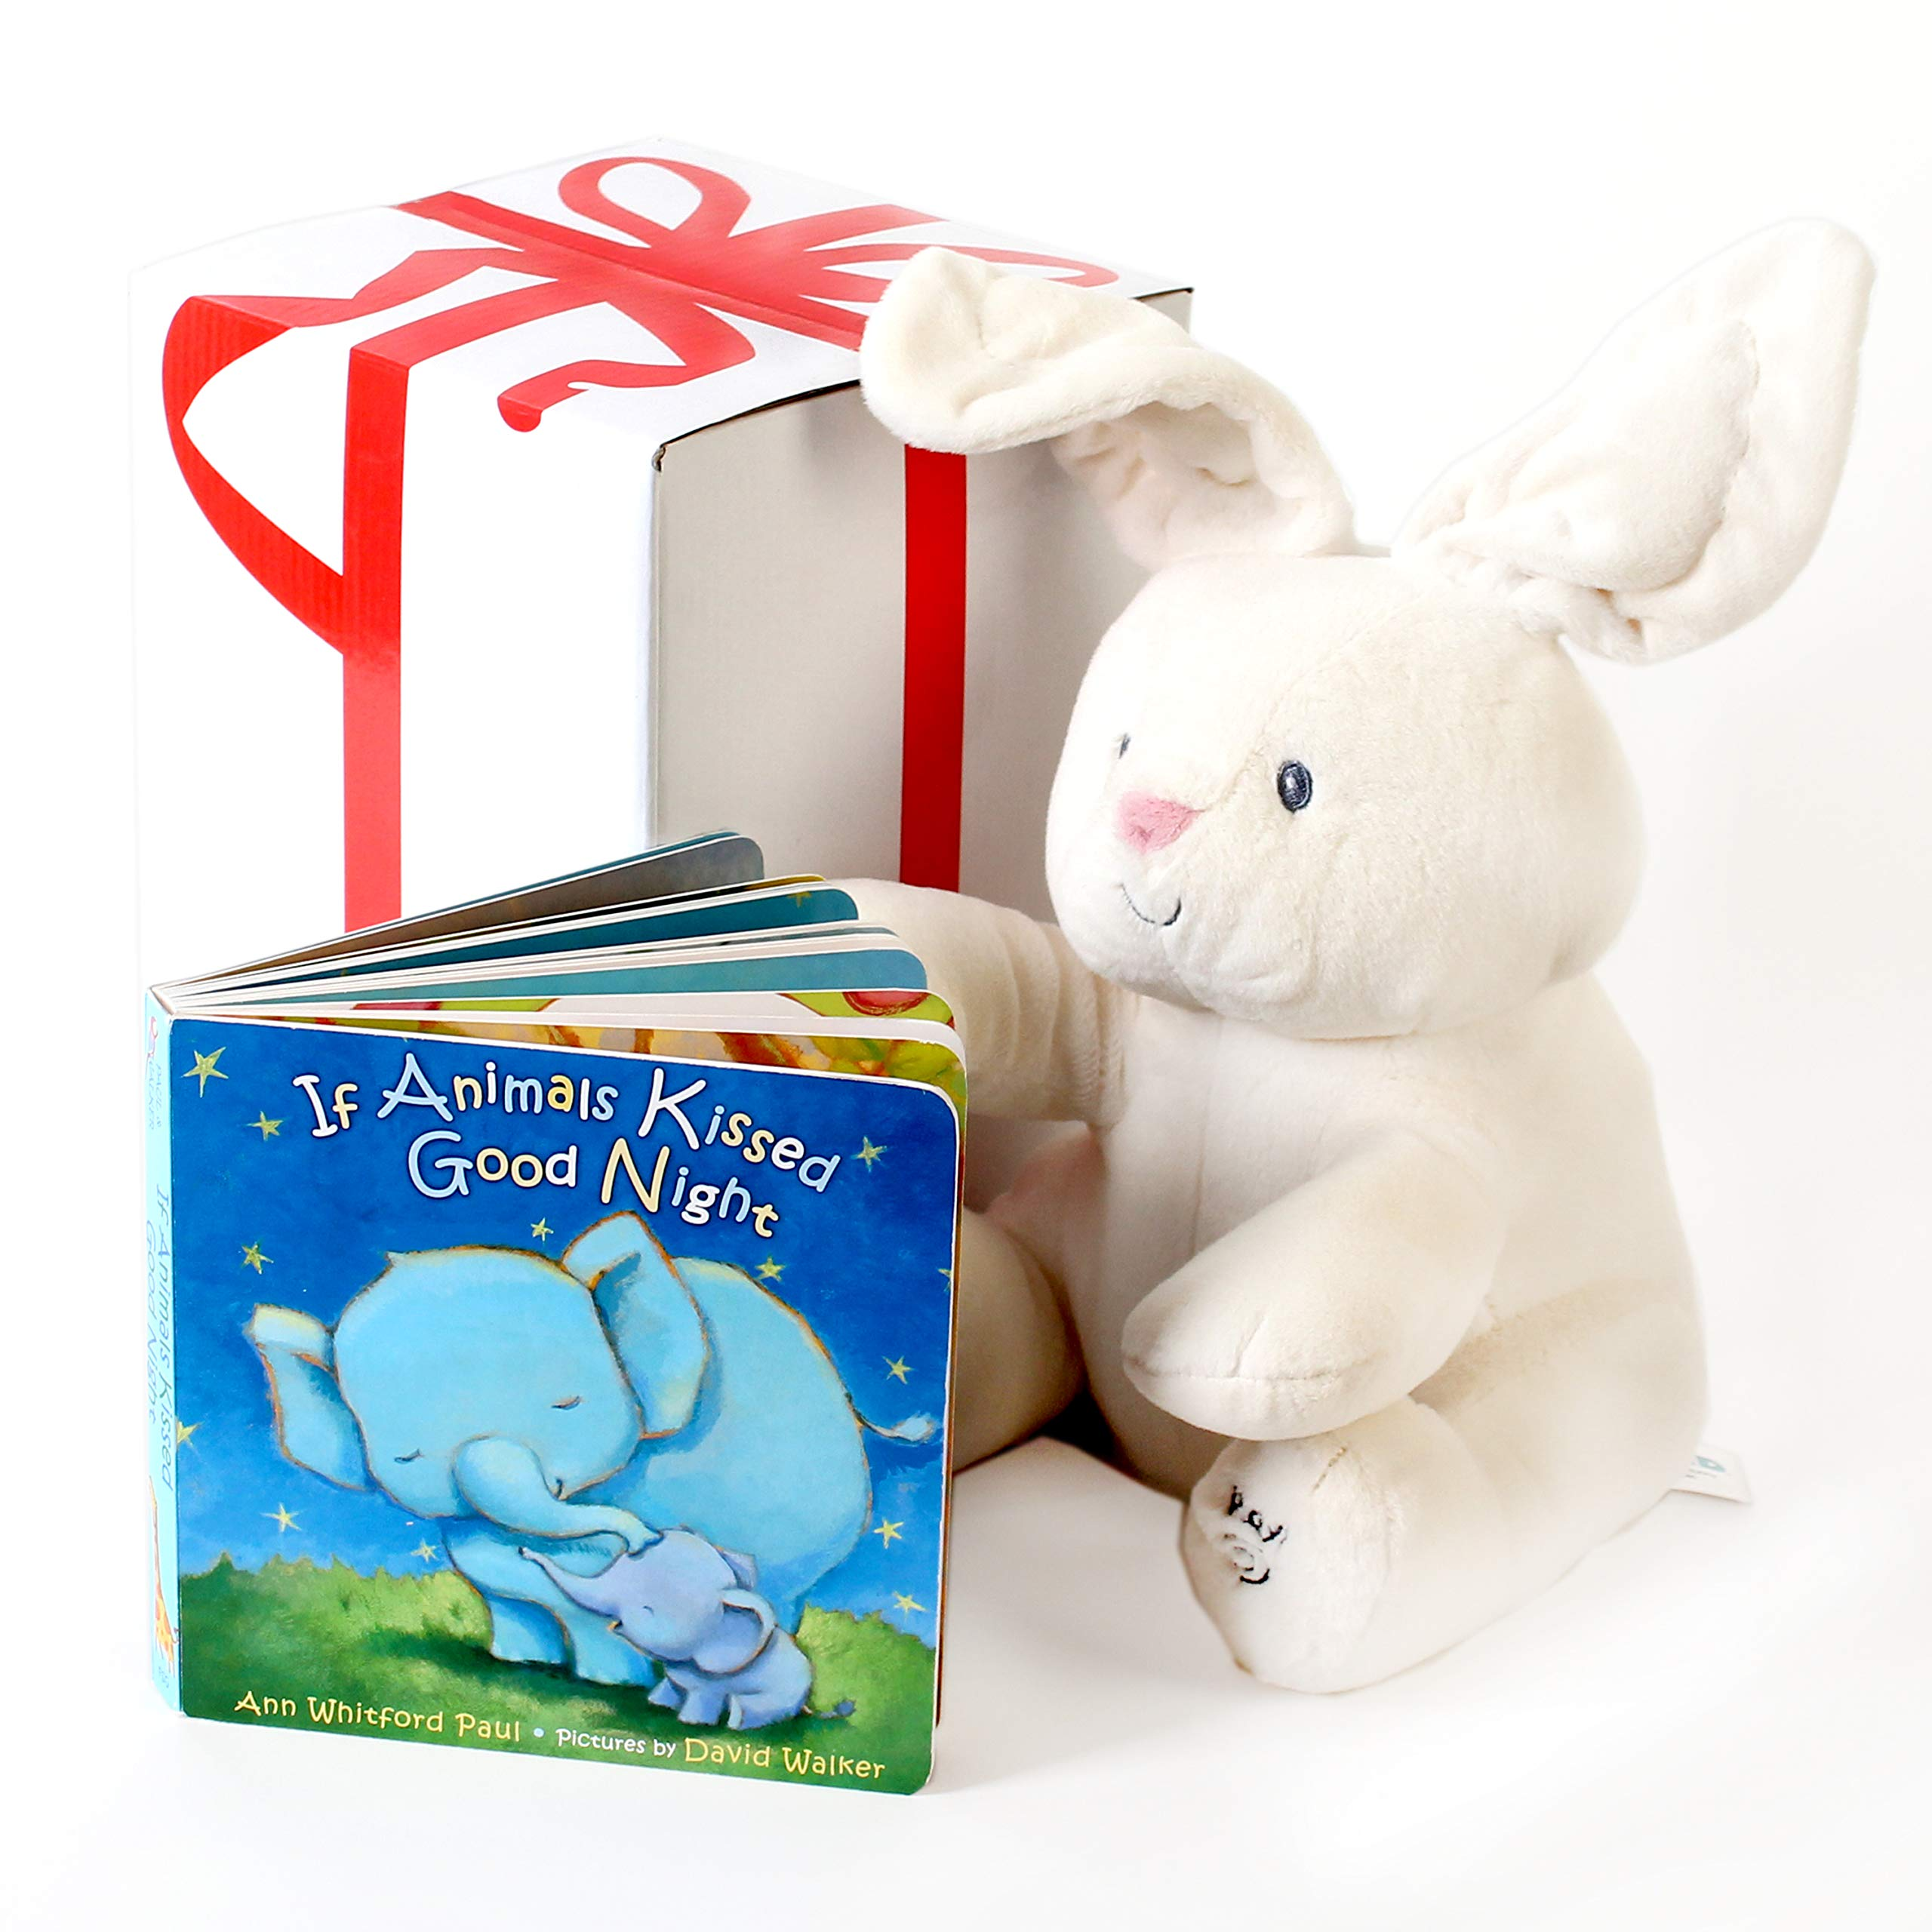 Baby Flora The Bunny Animated Plush Stuffed Animal Toy, Cream, 12'', With ''If Animals Kissed Good Night'' Baby Book . Free Gift Box Included. For Baby Gifts, Birthday, Holidays And Baby Shower. by GUND